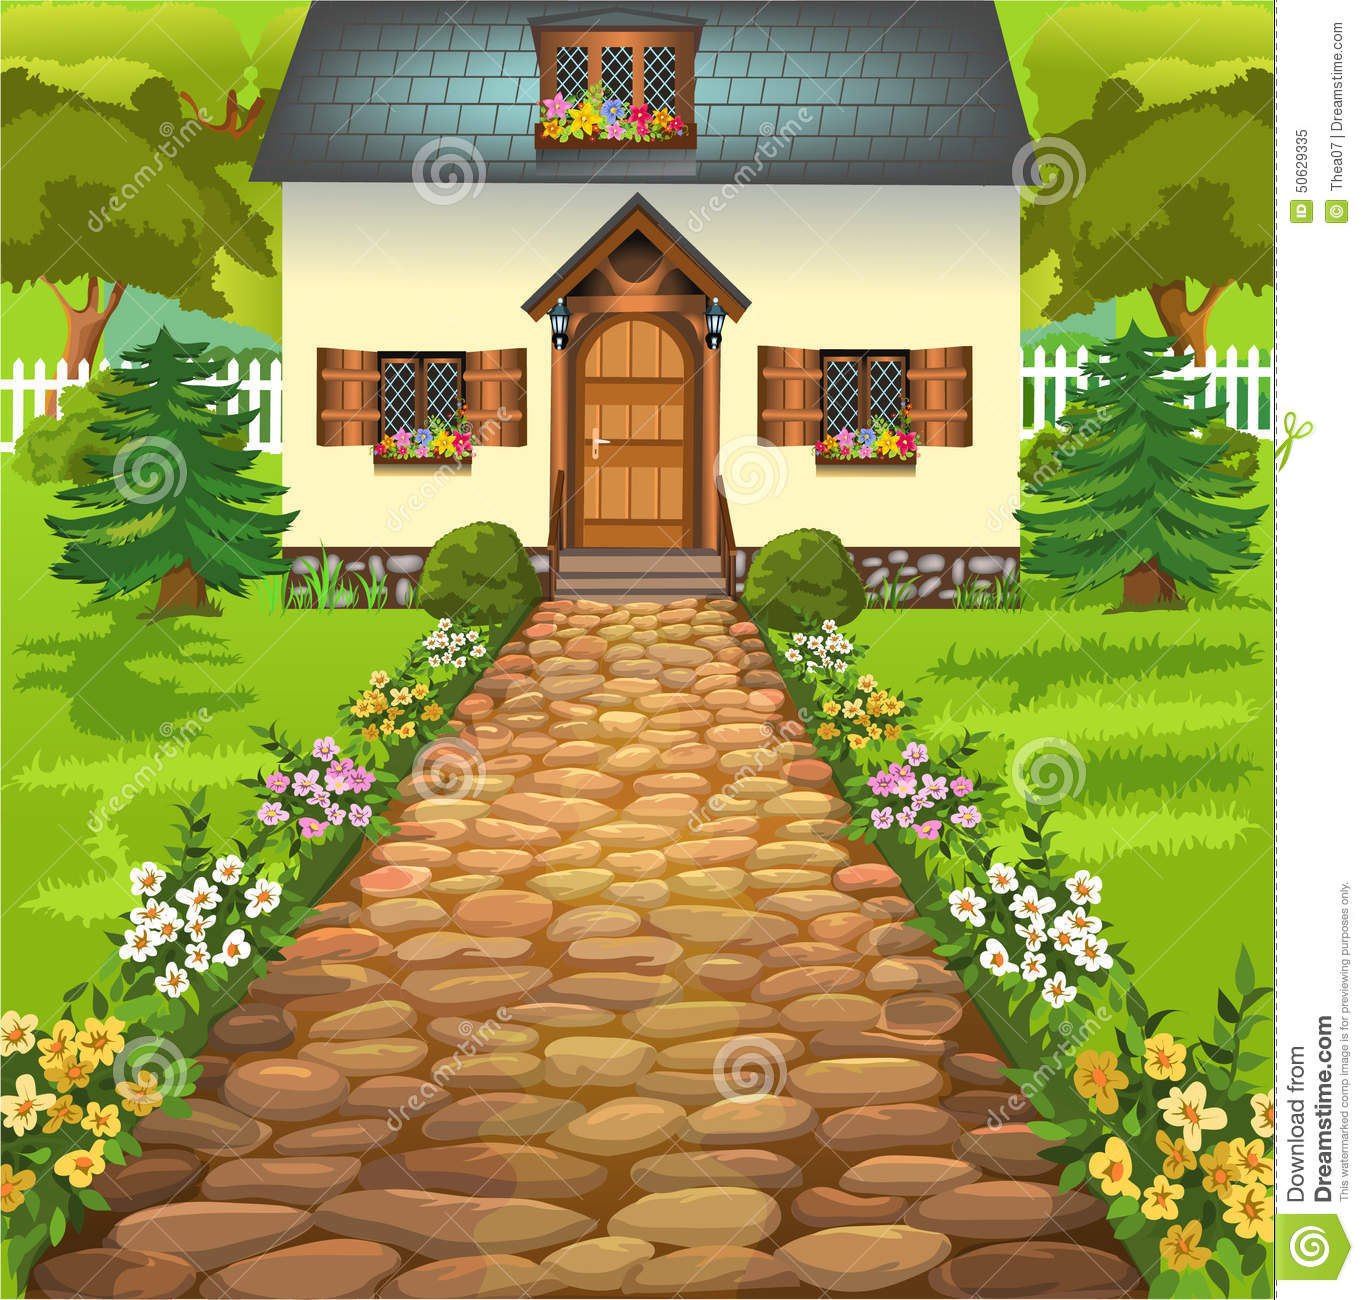 Rustic House In The Middle Of Nature Stock Vector